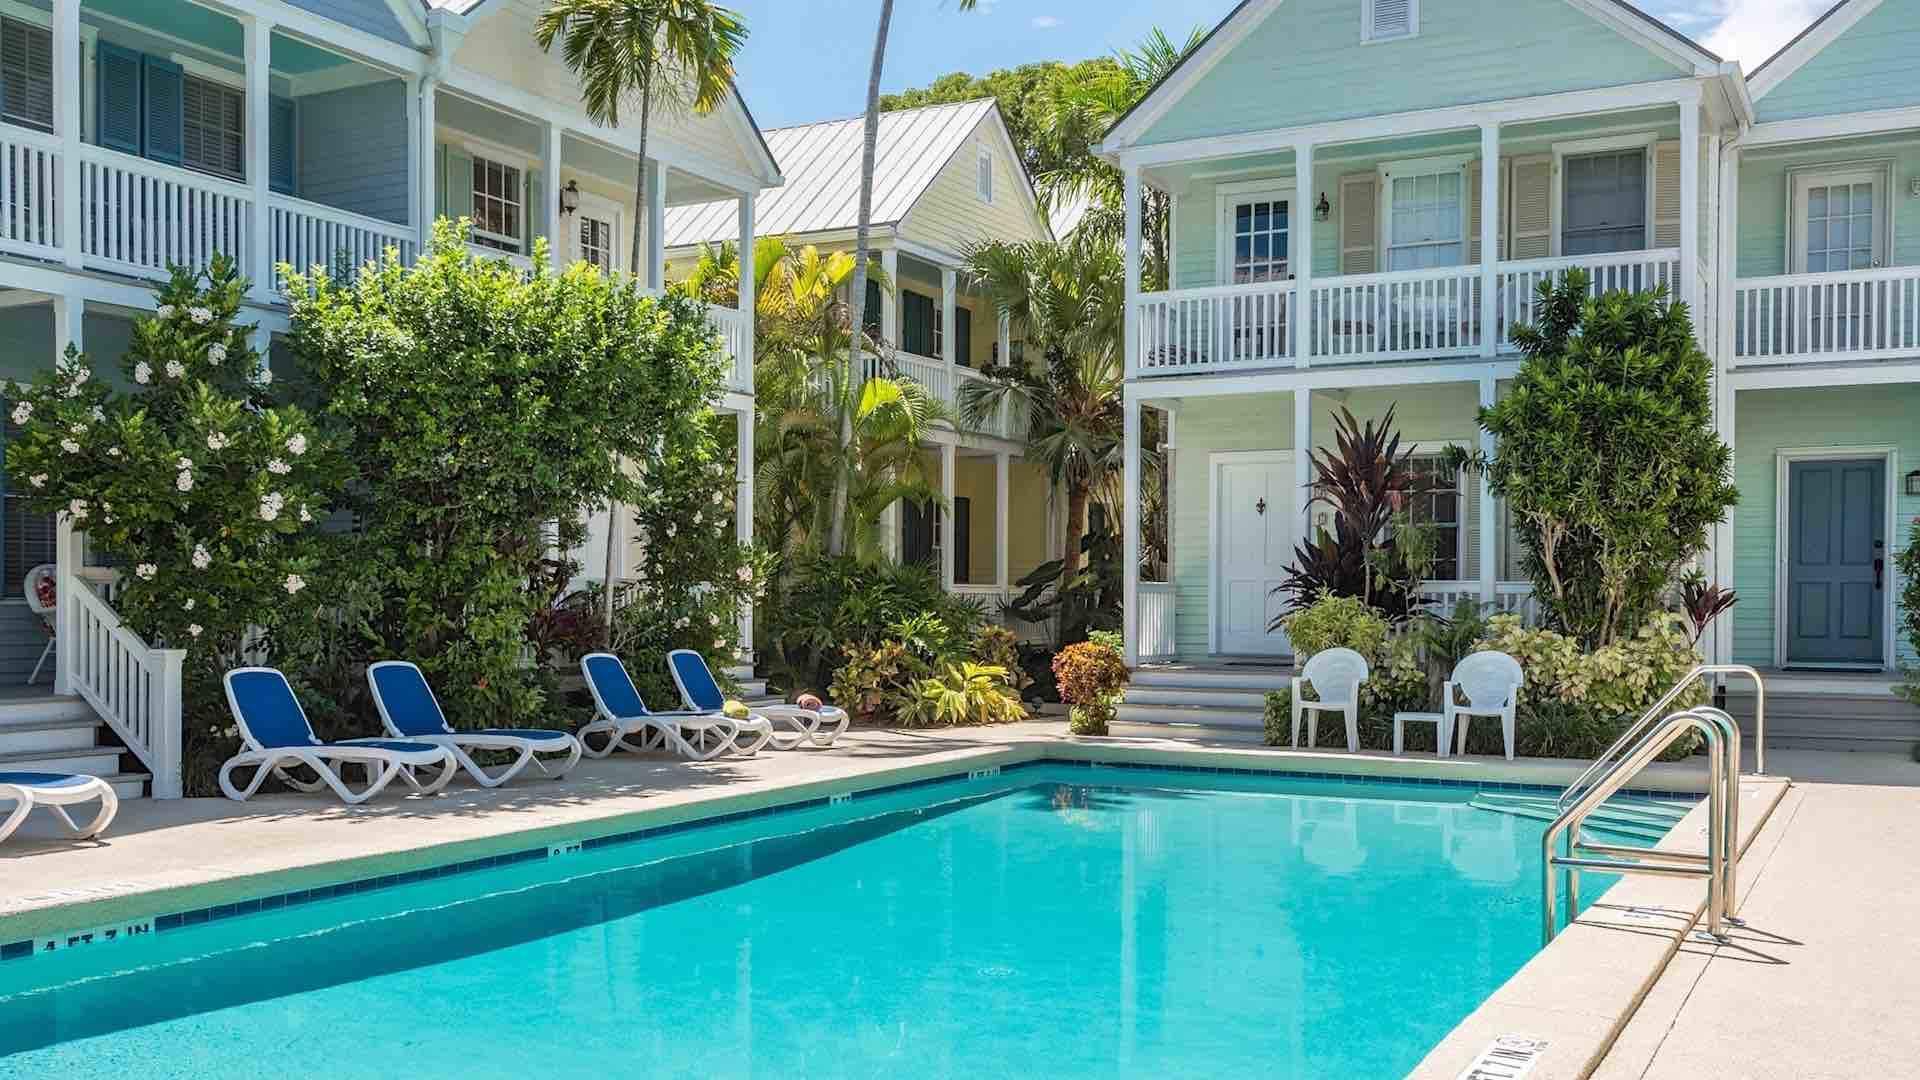 The community pool is just steps from your front door and is heated in the cooler months...